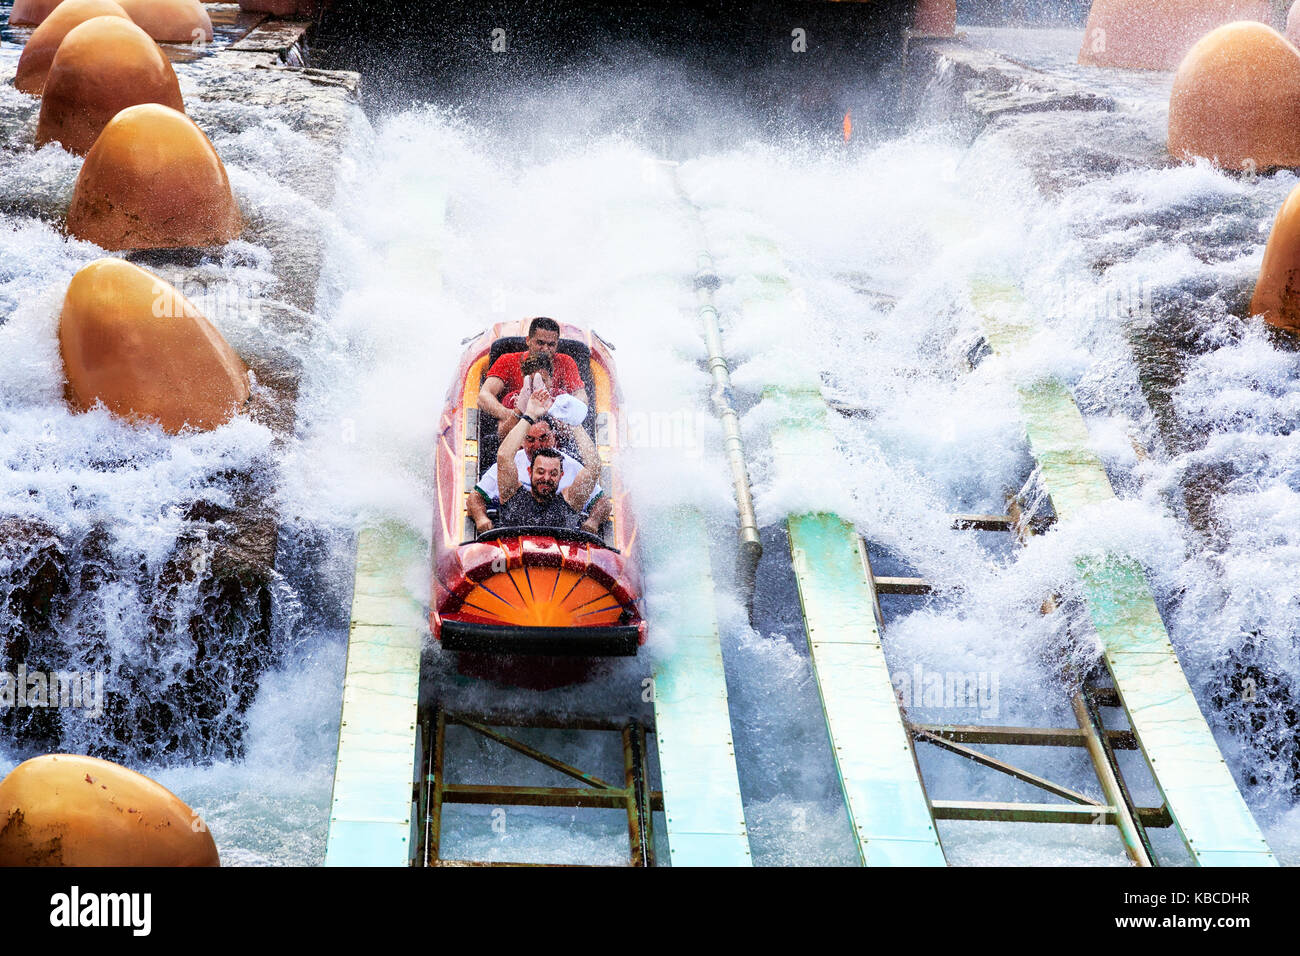 Tourists enjoying the Splash Mountain theme park ride, Universal Studios, Orlando, Florida, USA - Stock Image